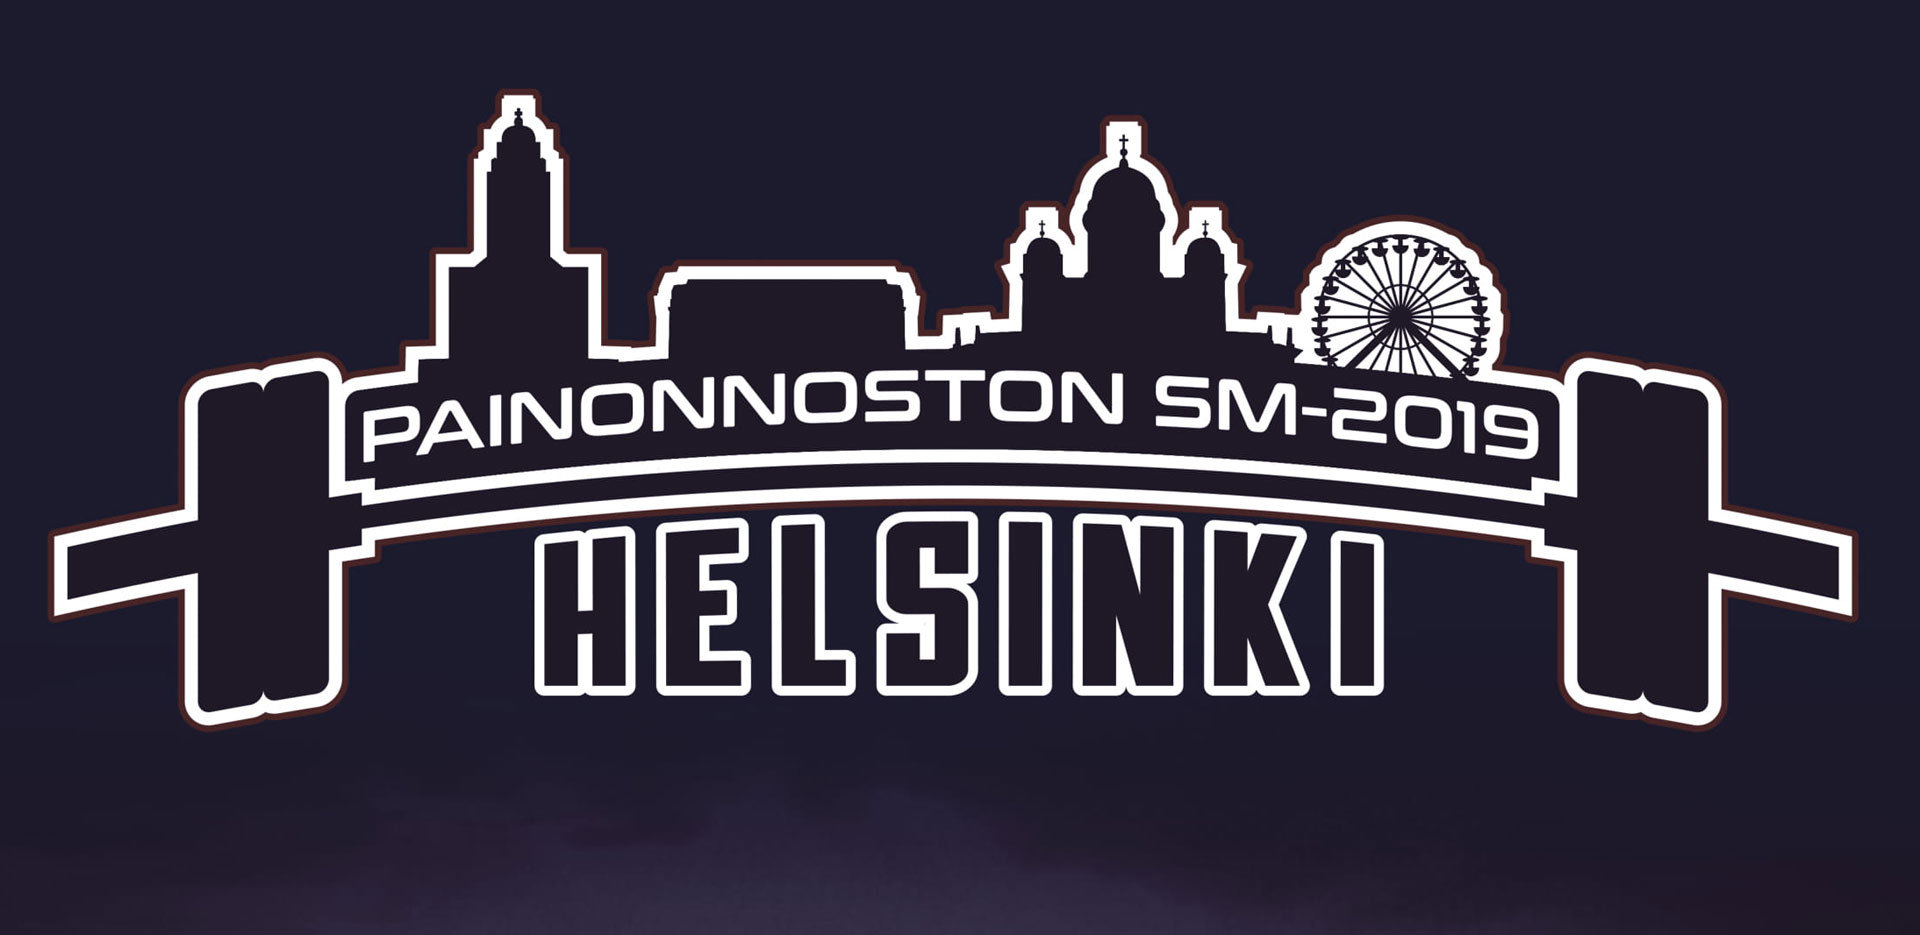 Link to event Weightlifting Finnish Championships 2019